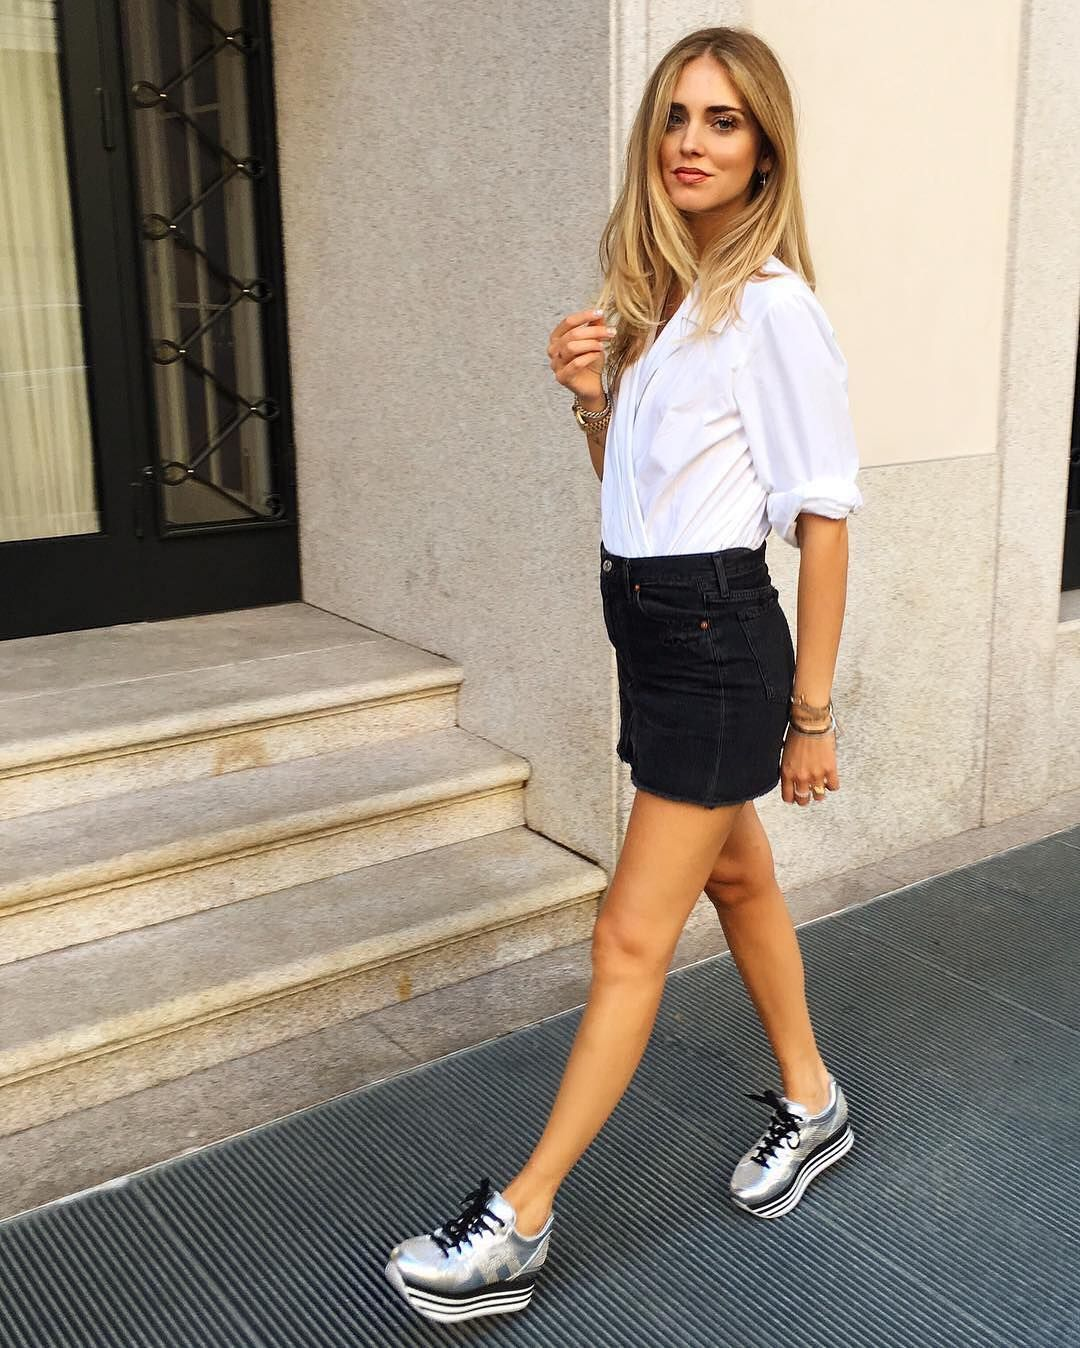 9e9a742f36a Chiara Ferragni wearing  HOGAN  H222 Maxi Platform  sneakers  HoganClub  Join the  HoganClub  lifestyle and share with us your  hoganbrand pictures  on ...